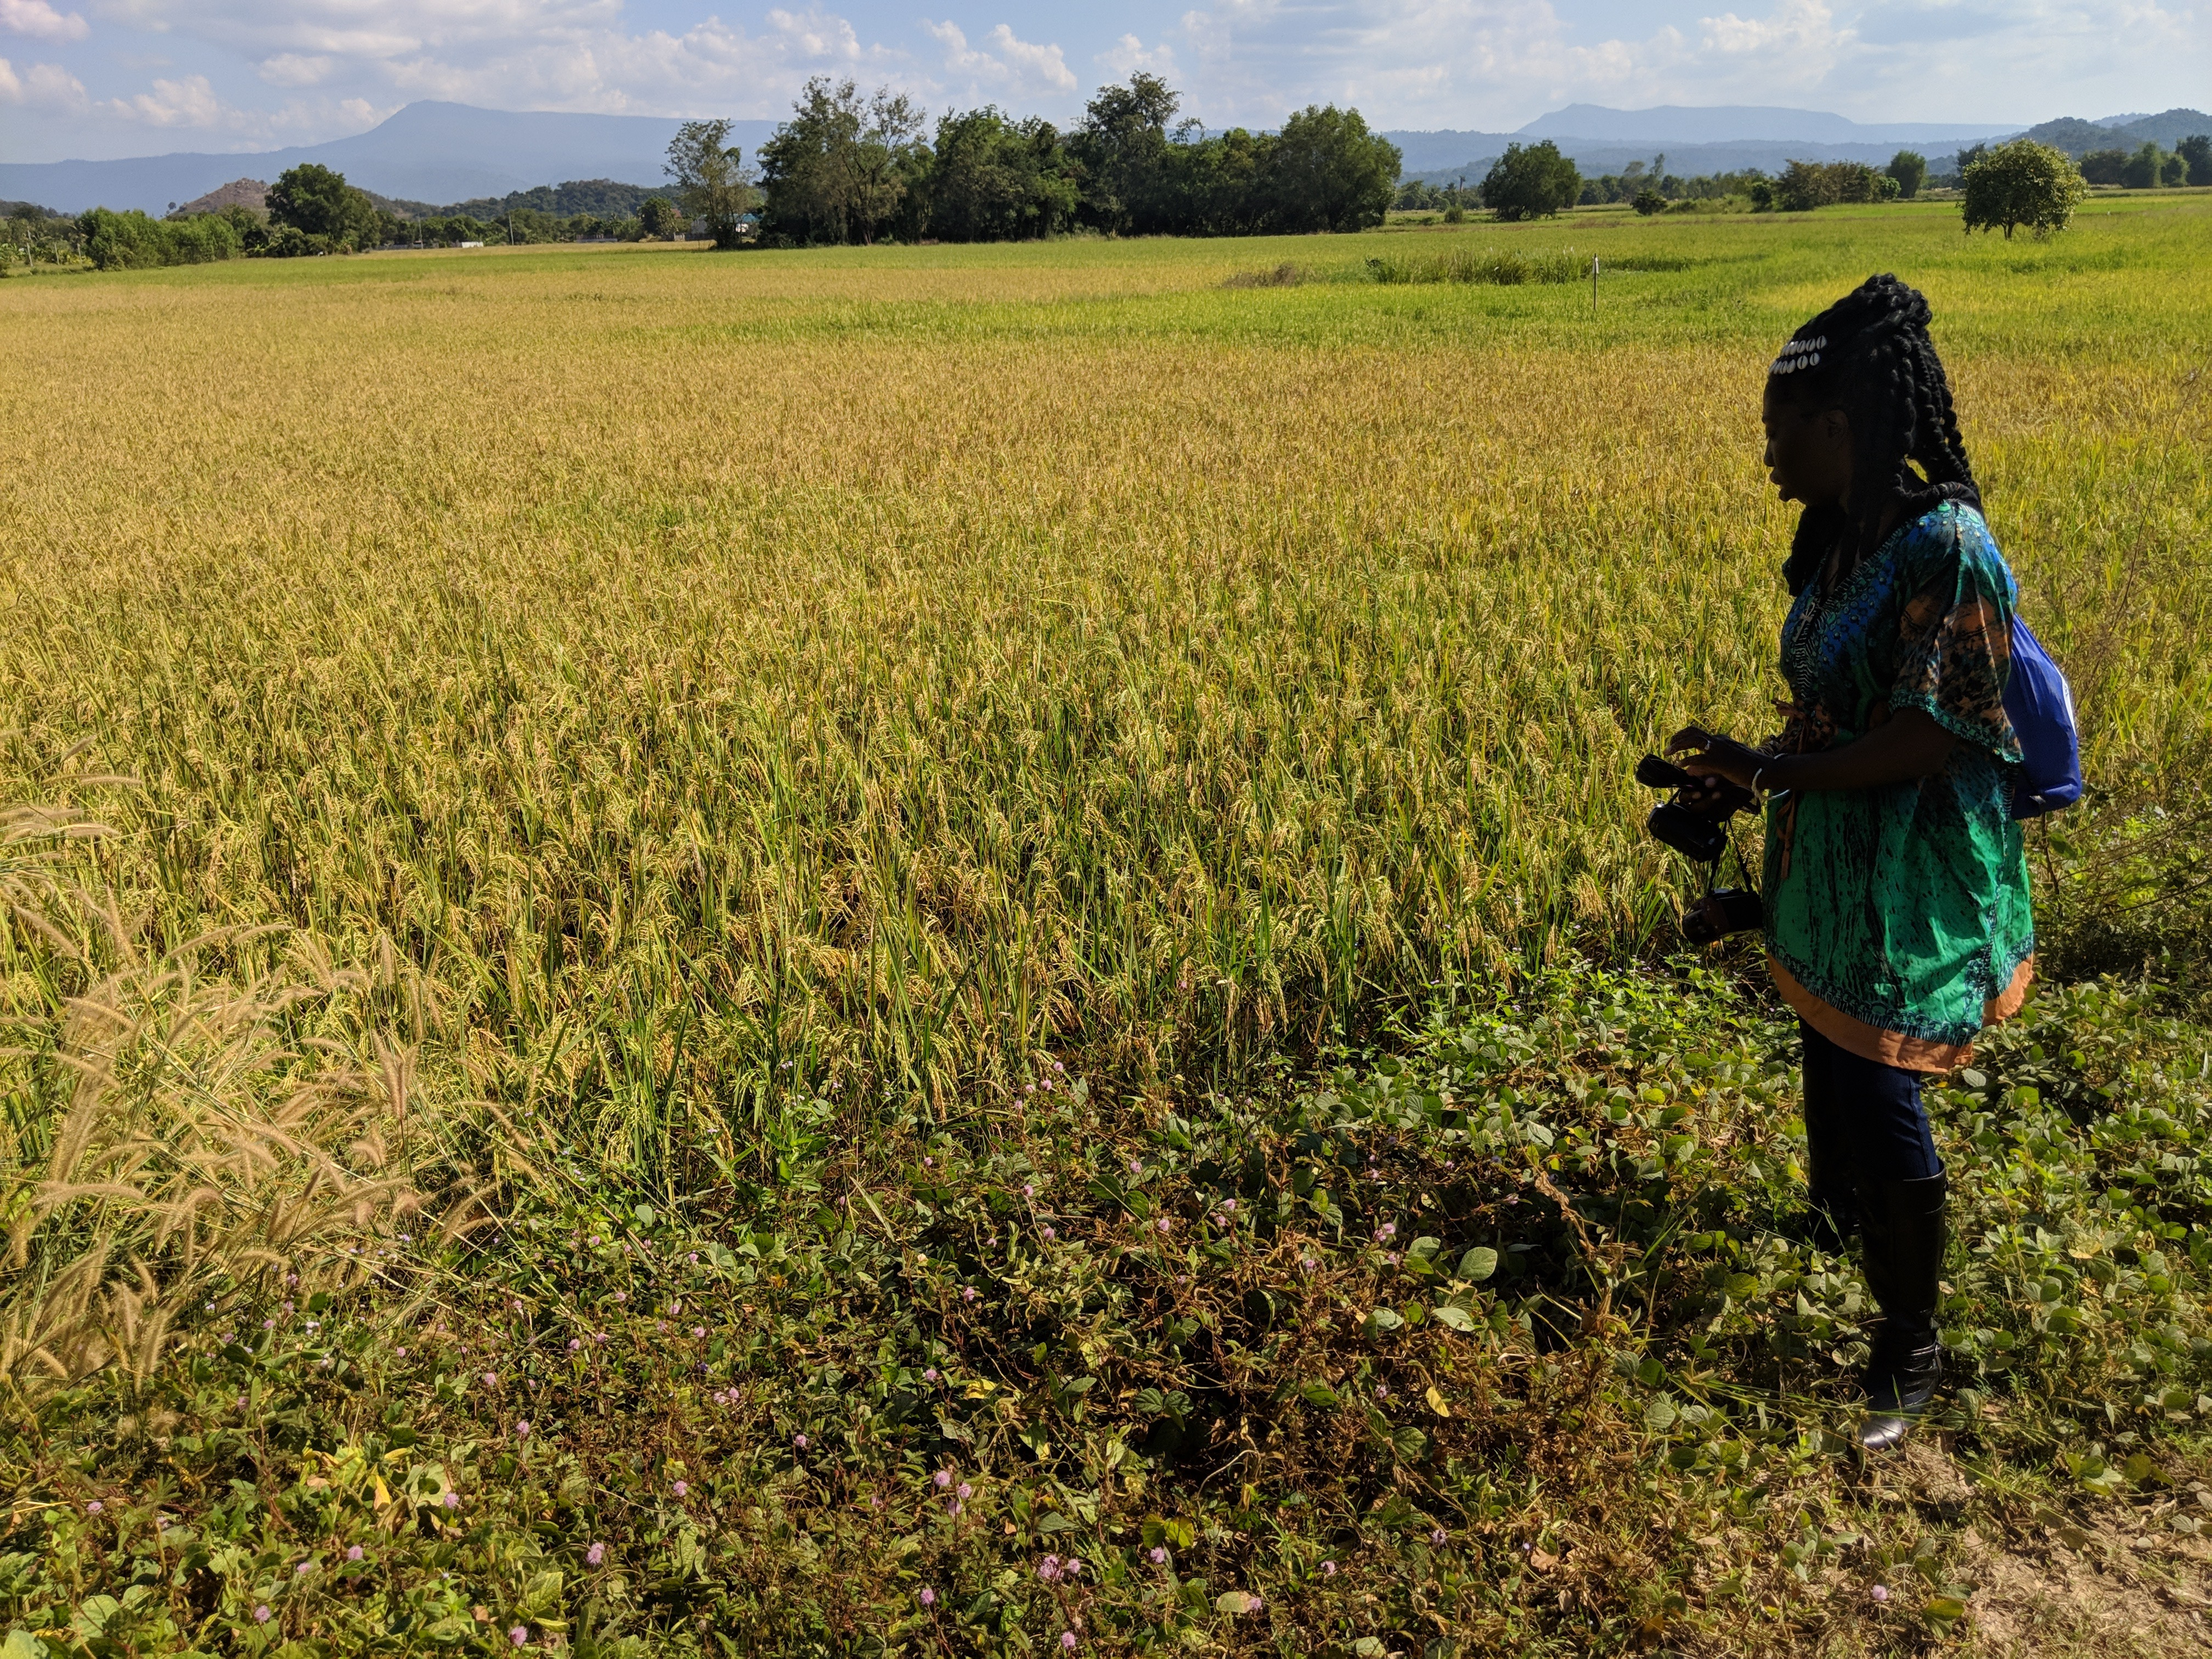 Queen Quet of the Gullah/Geechee  in Rice Paddy in Thailand